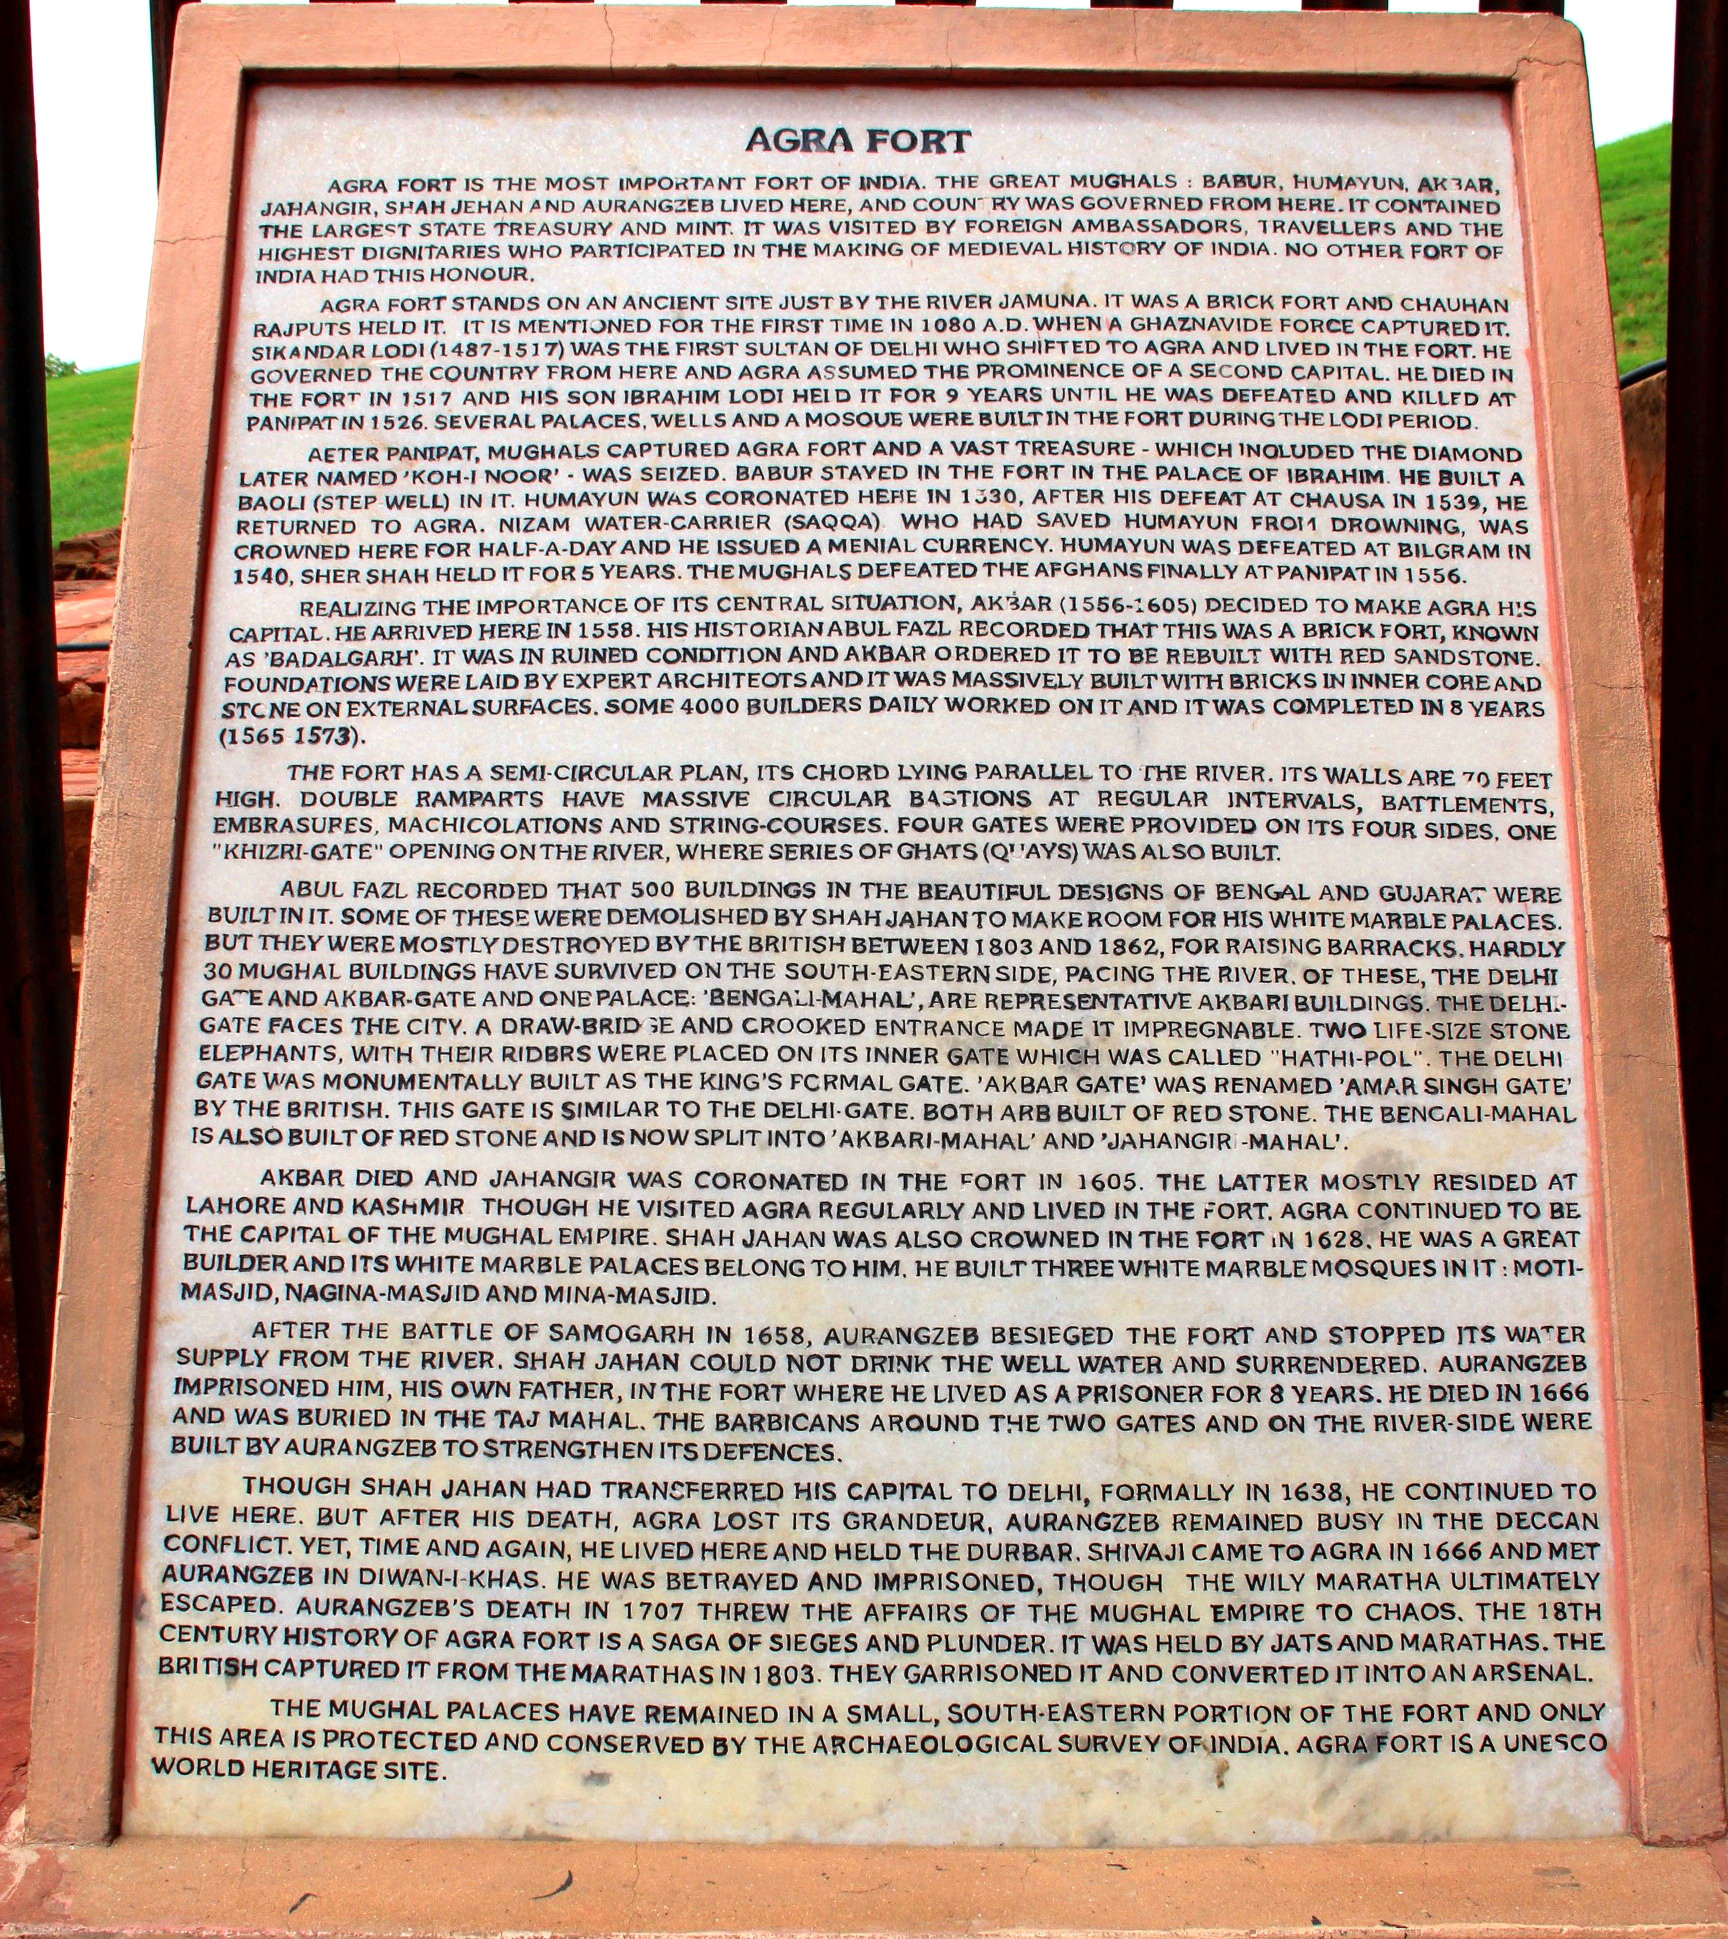 History of Agra Fort, Agra, India